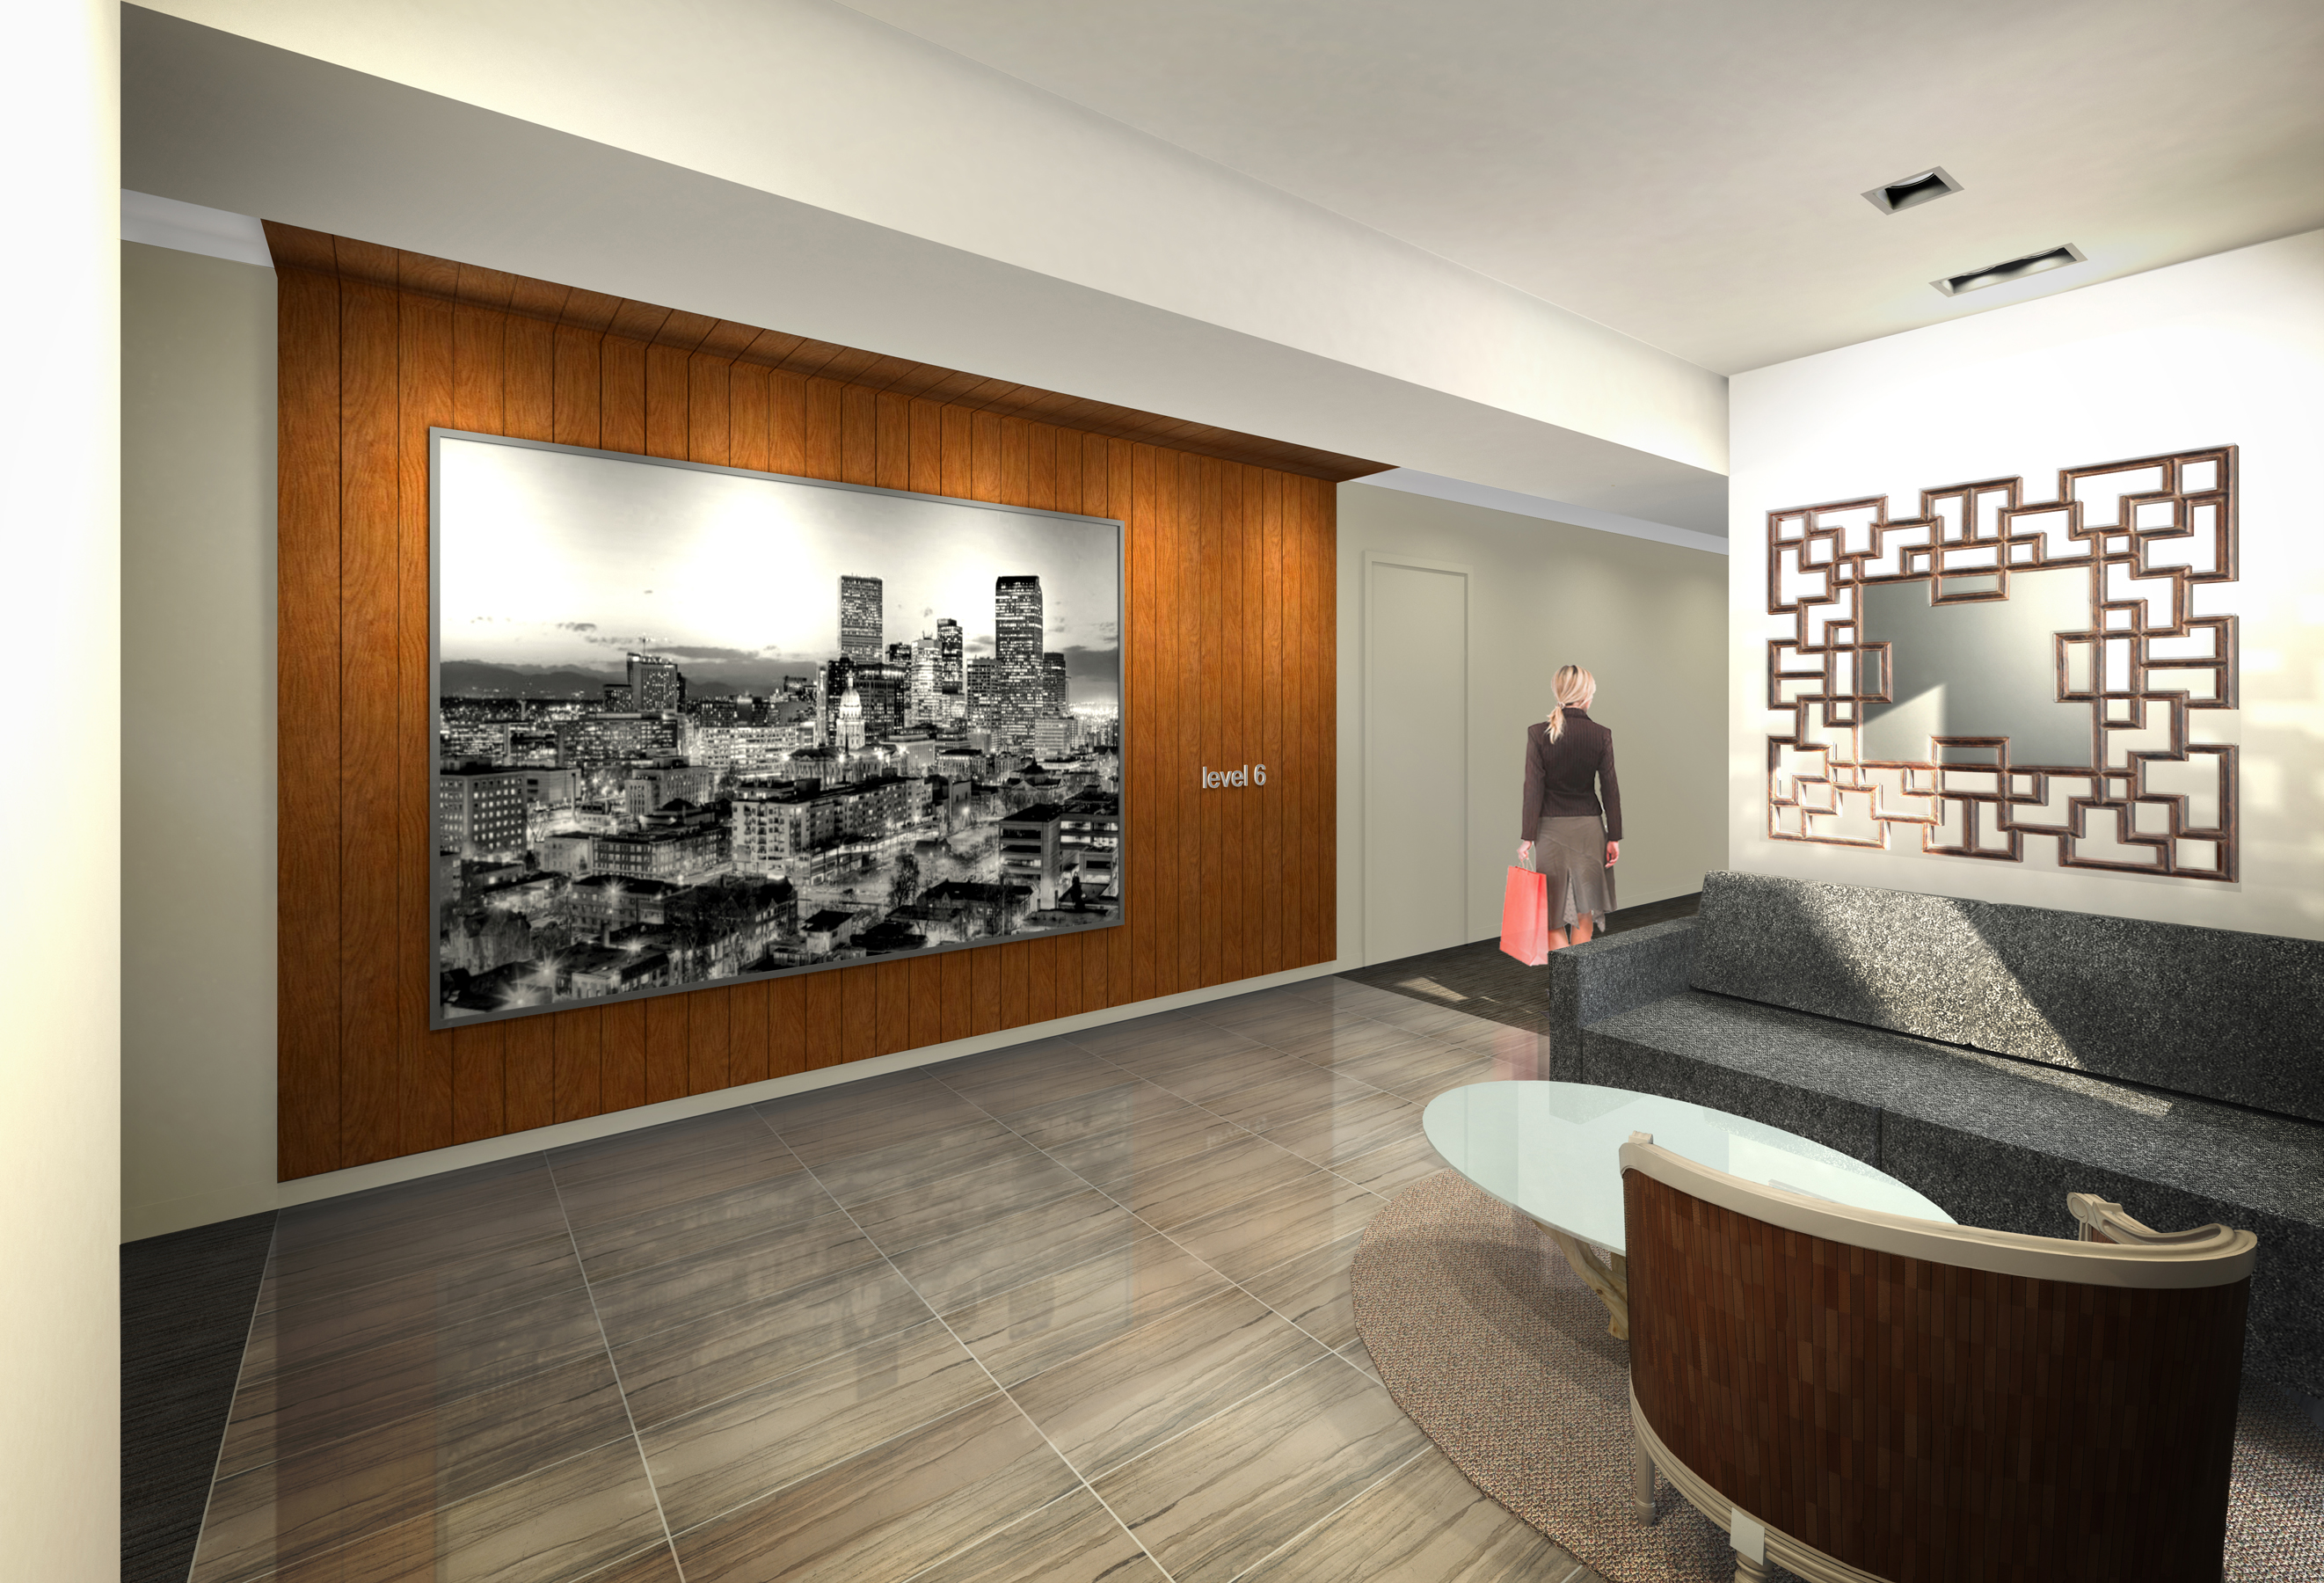 9 Residences at Fillmore Plaza Cherry Creek open studio architecture OSA - interior rendering elevat